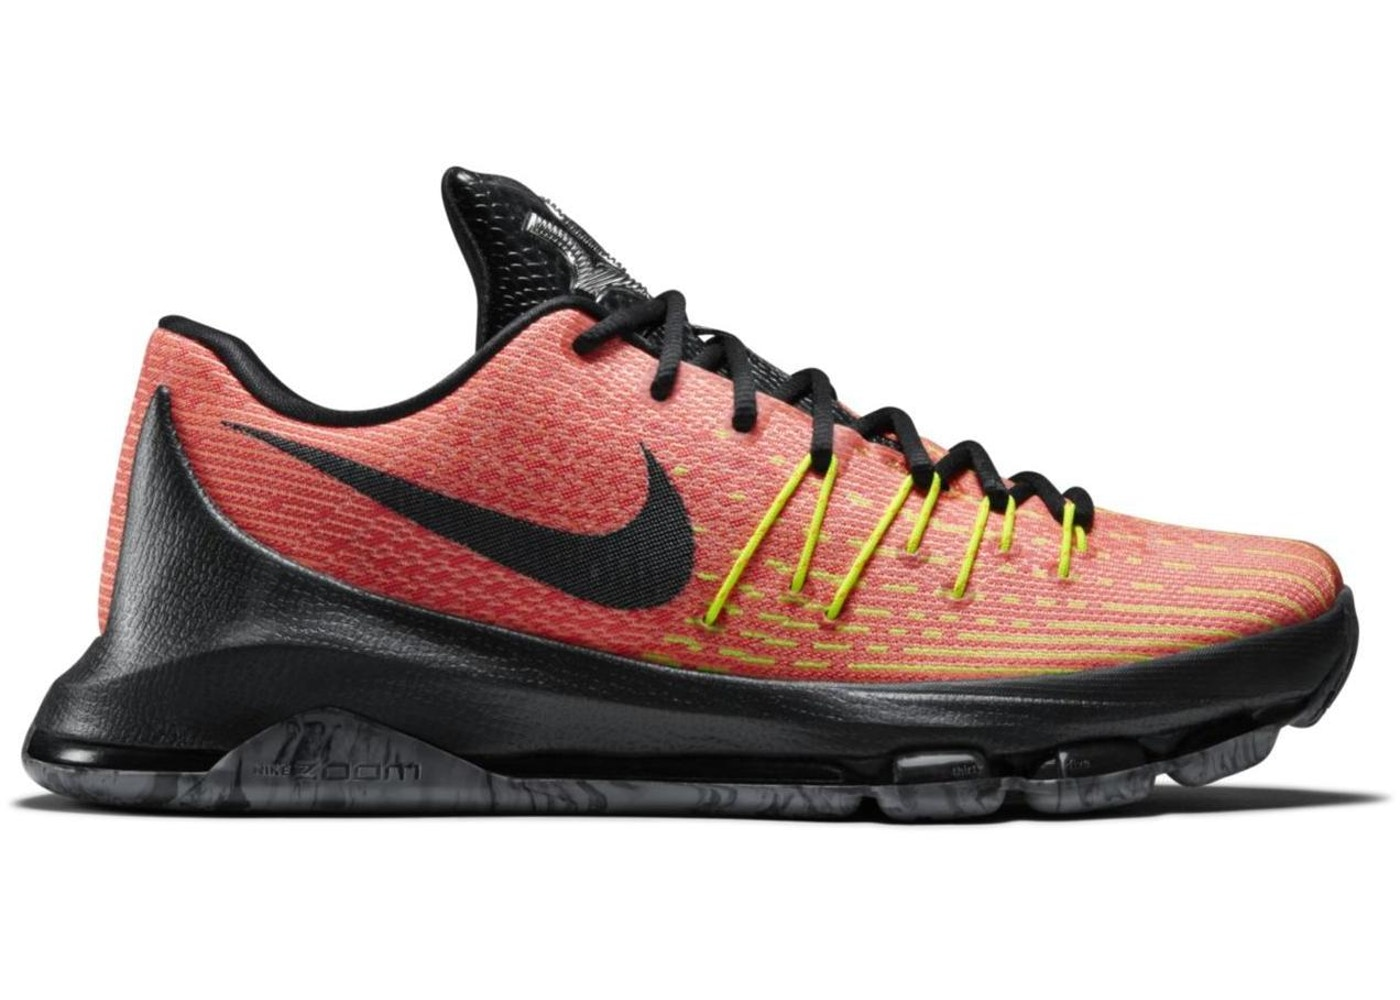 new product 0a142 c87e5 Buy Nike KD 8 Shoes   Deadstock Sneakers